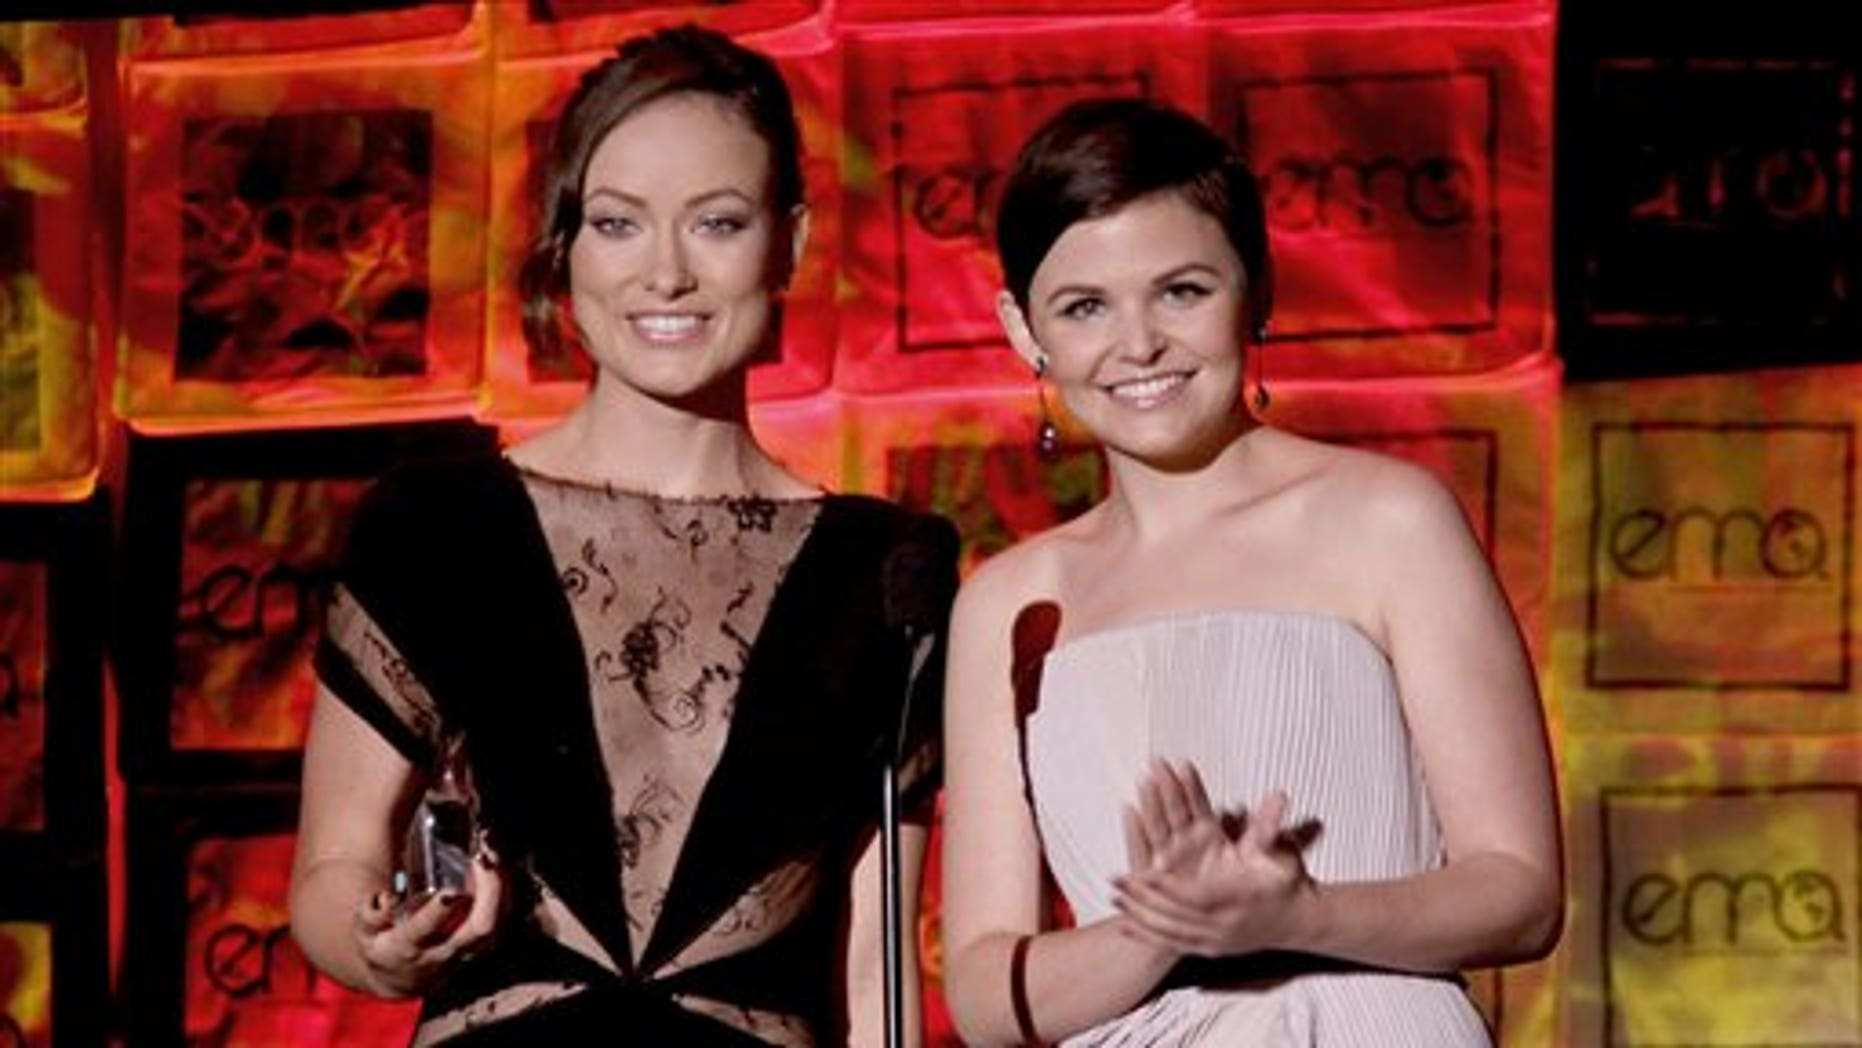 Actors Olivia Wilde, left, and Ginnifer Goodwin, attend the 20th Anniversary Environmental Media Awards Oct. 25, 2009, in Los Angeles.  (AP)